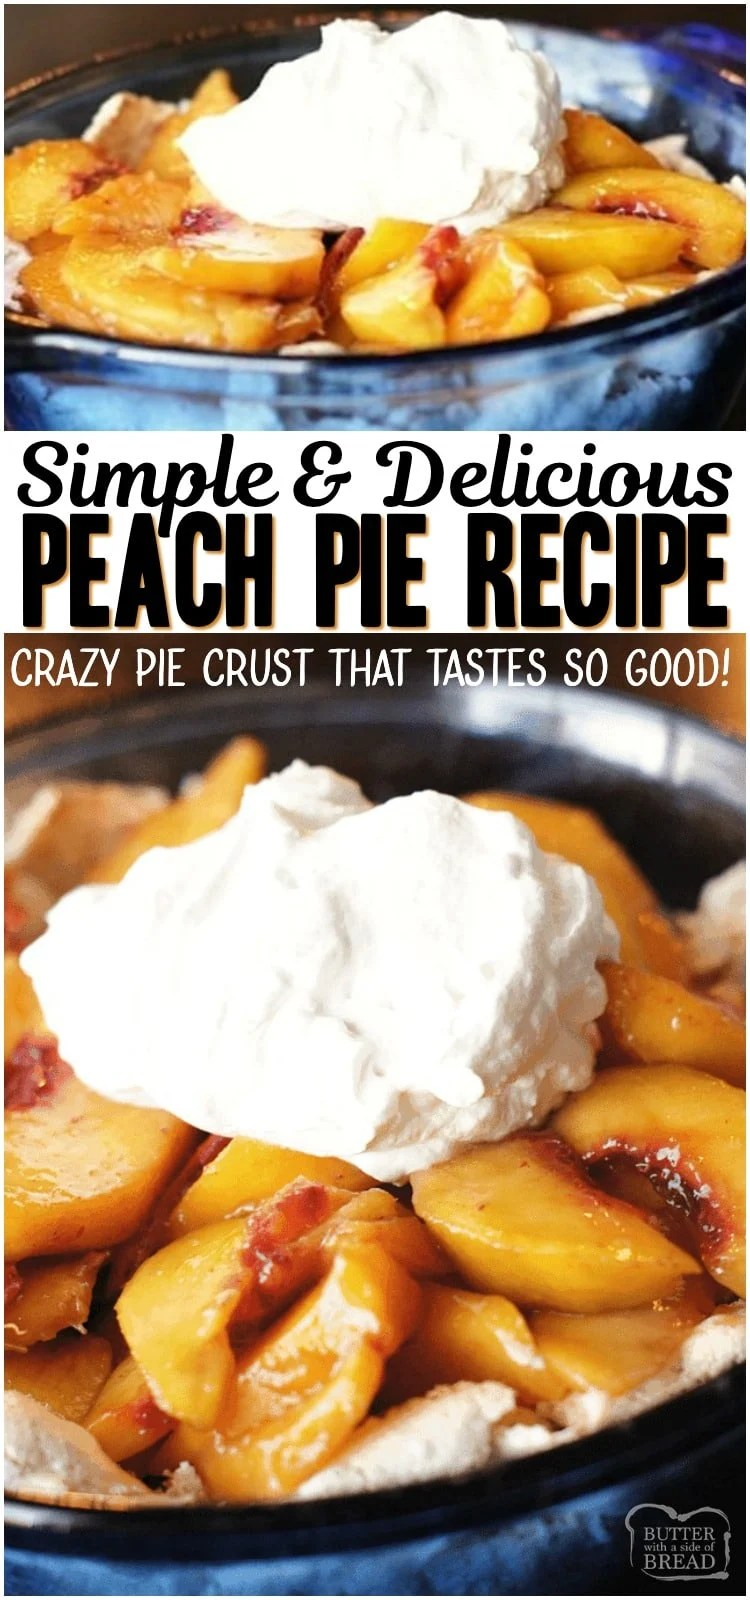 Easy Peach Pie is one of my favorite recipes for fresh peaches! Our simple recipe for pie crust will blow your mind- can you believe that secret ingredient?!  Try it and you'll see just how delicious it is. #pie #peaches #peach #piecrust #baking #recipe #dessert from BUTTER WITH A SIDE OF BREAD